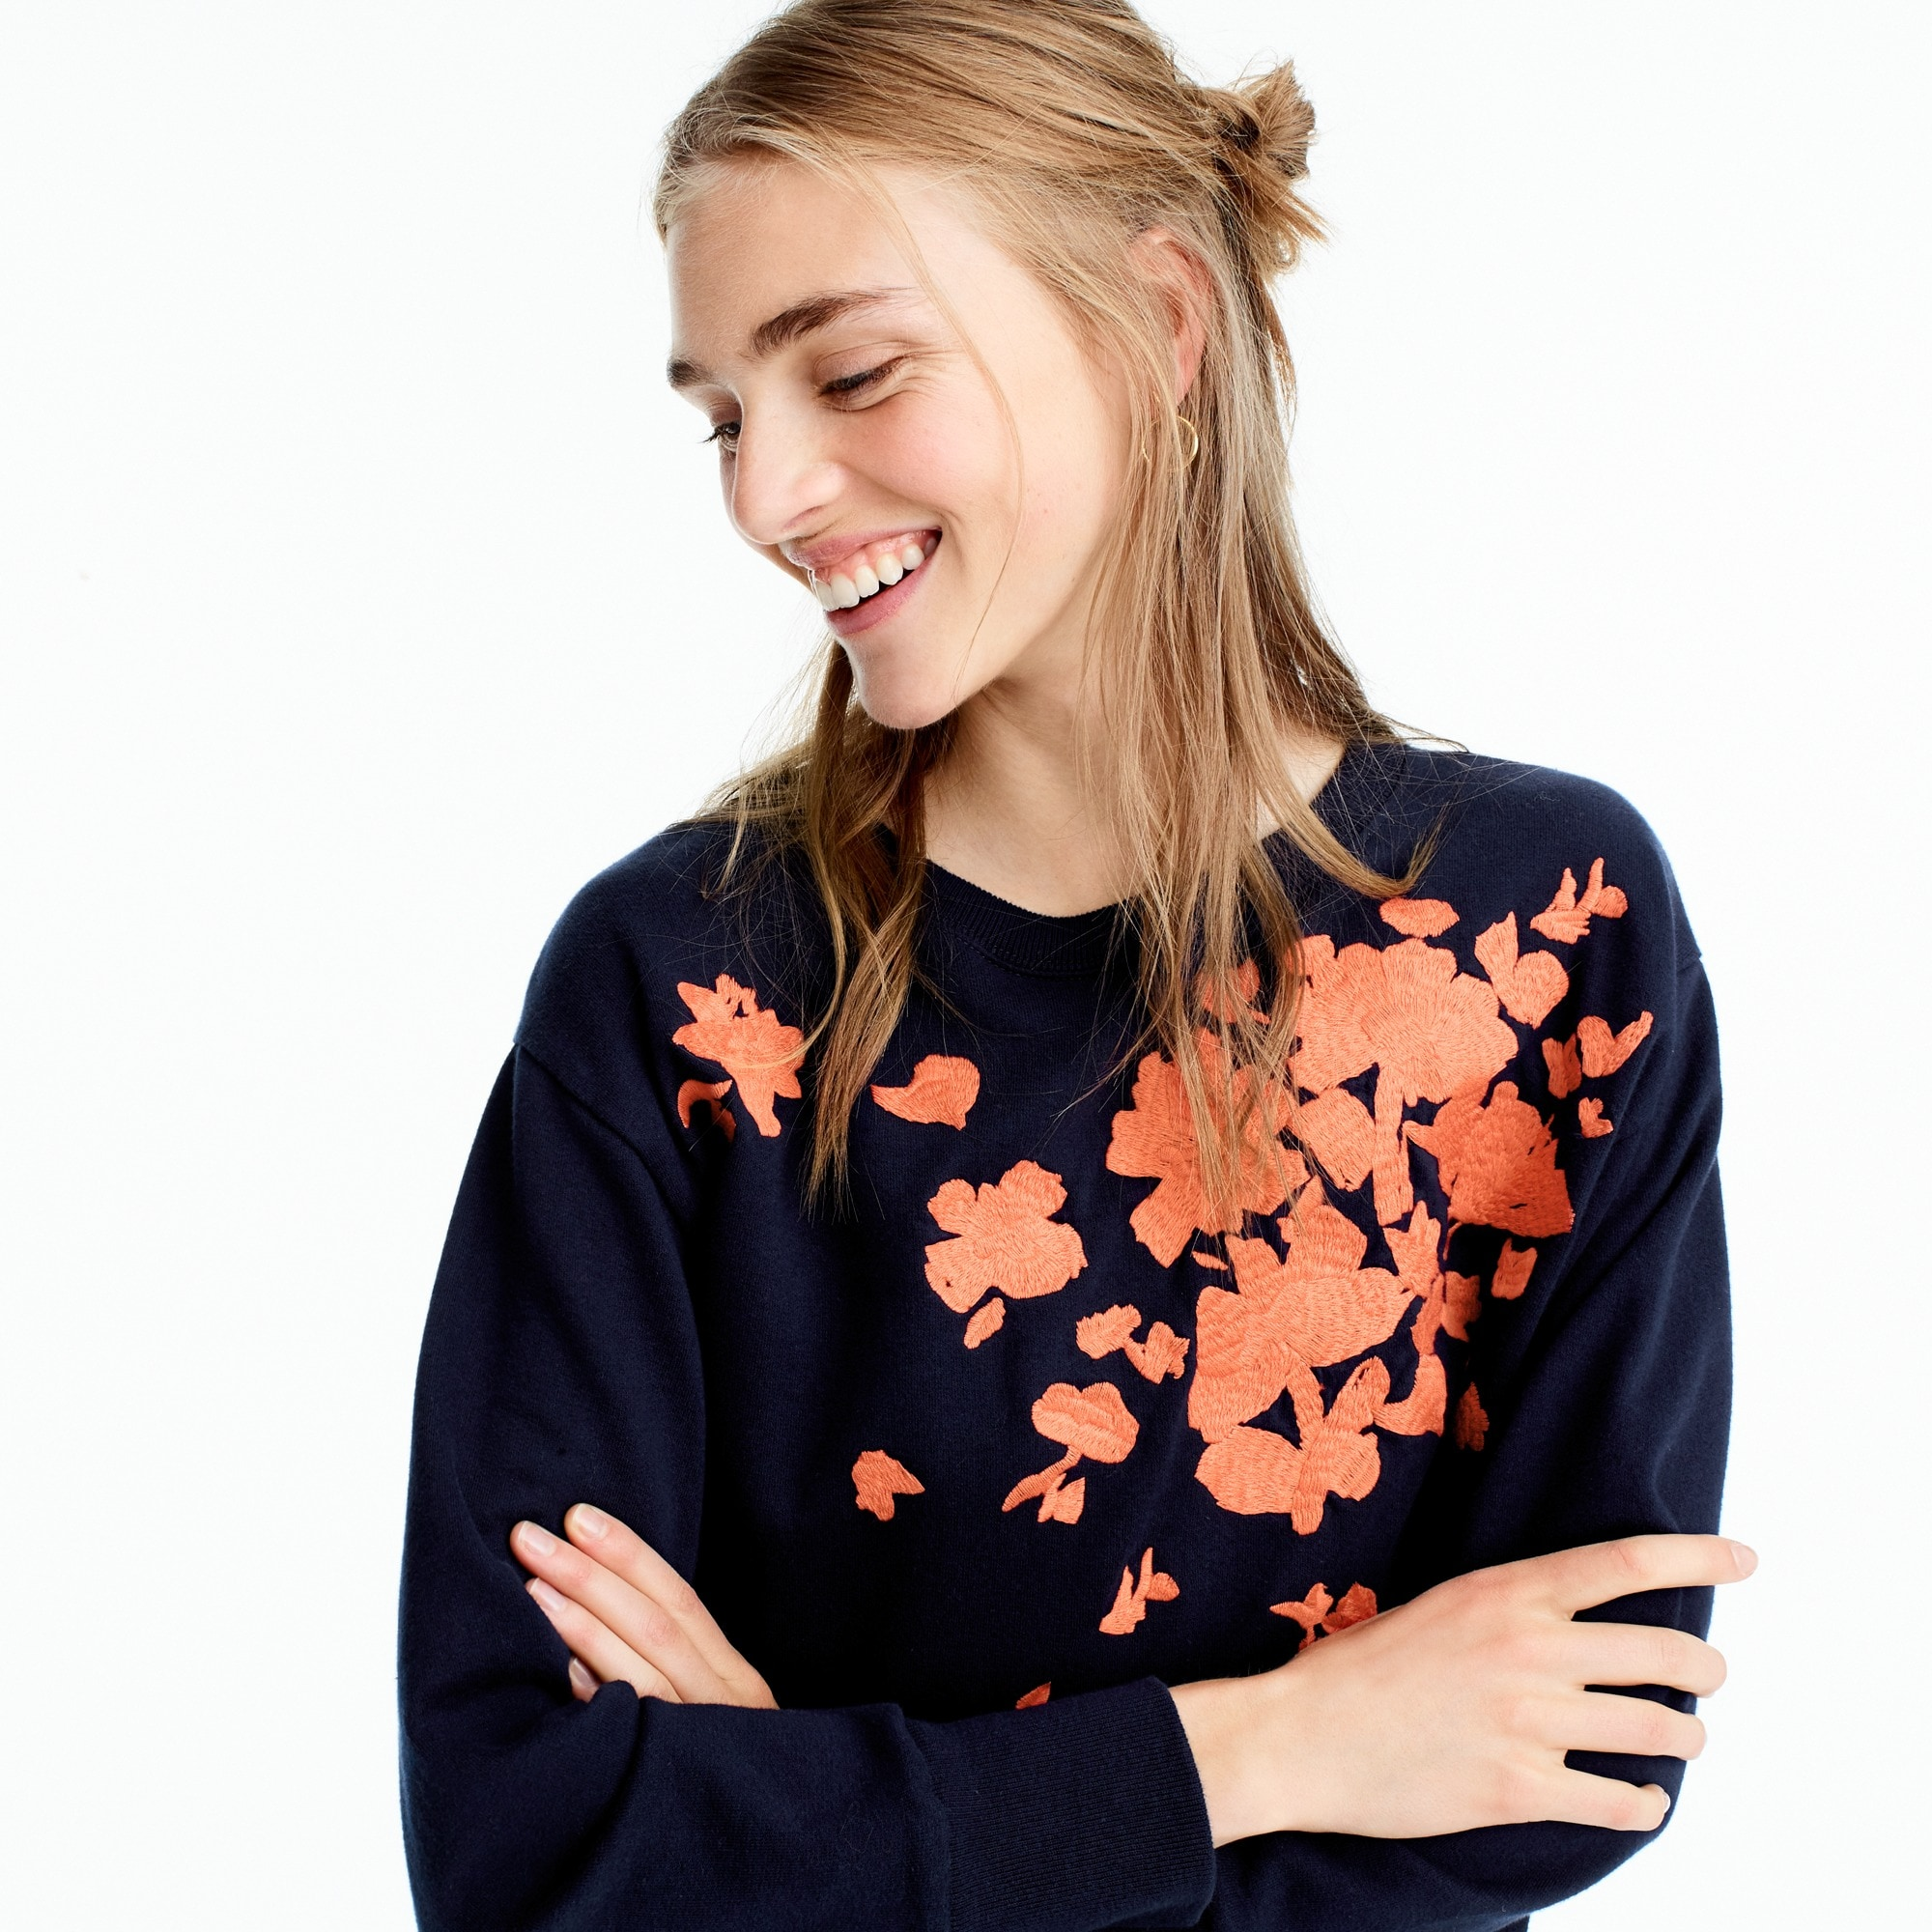 womens Embroidered flower sweatshirt